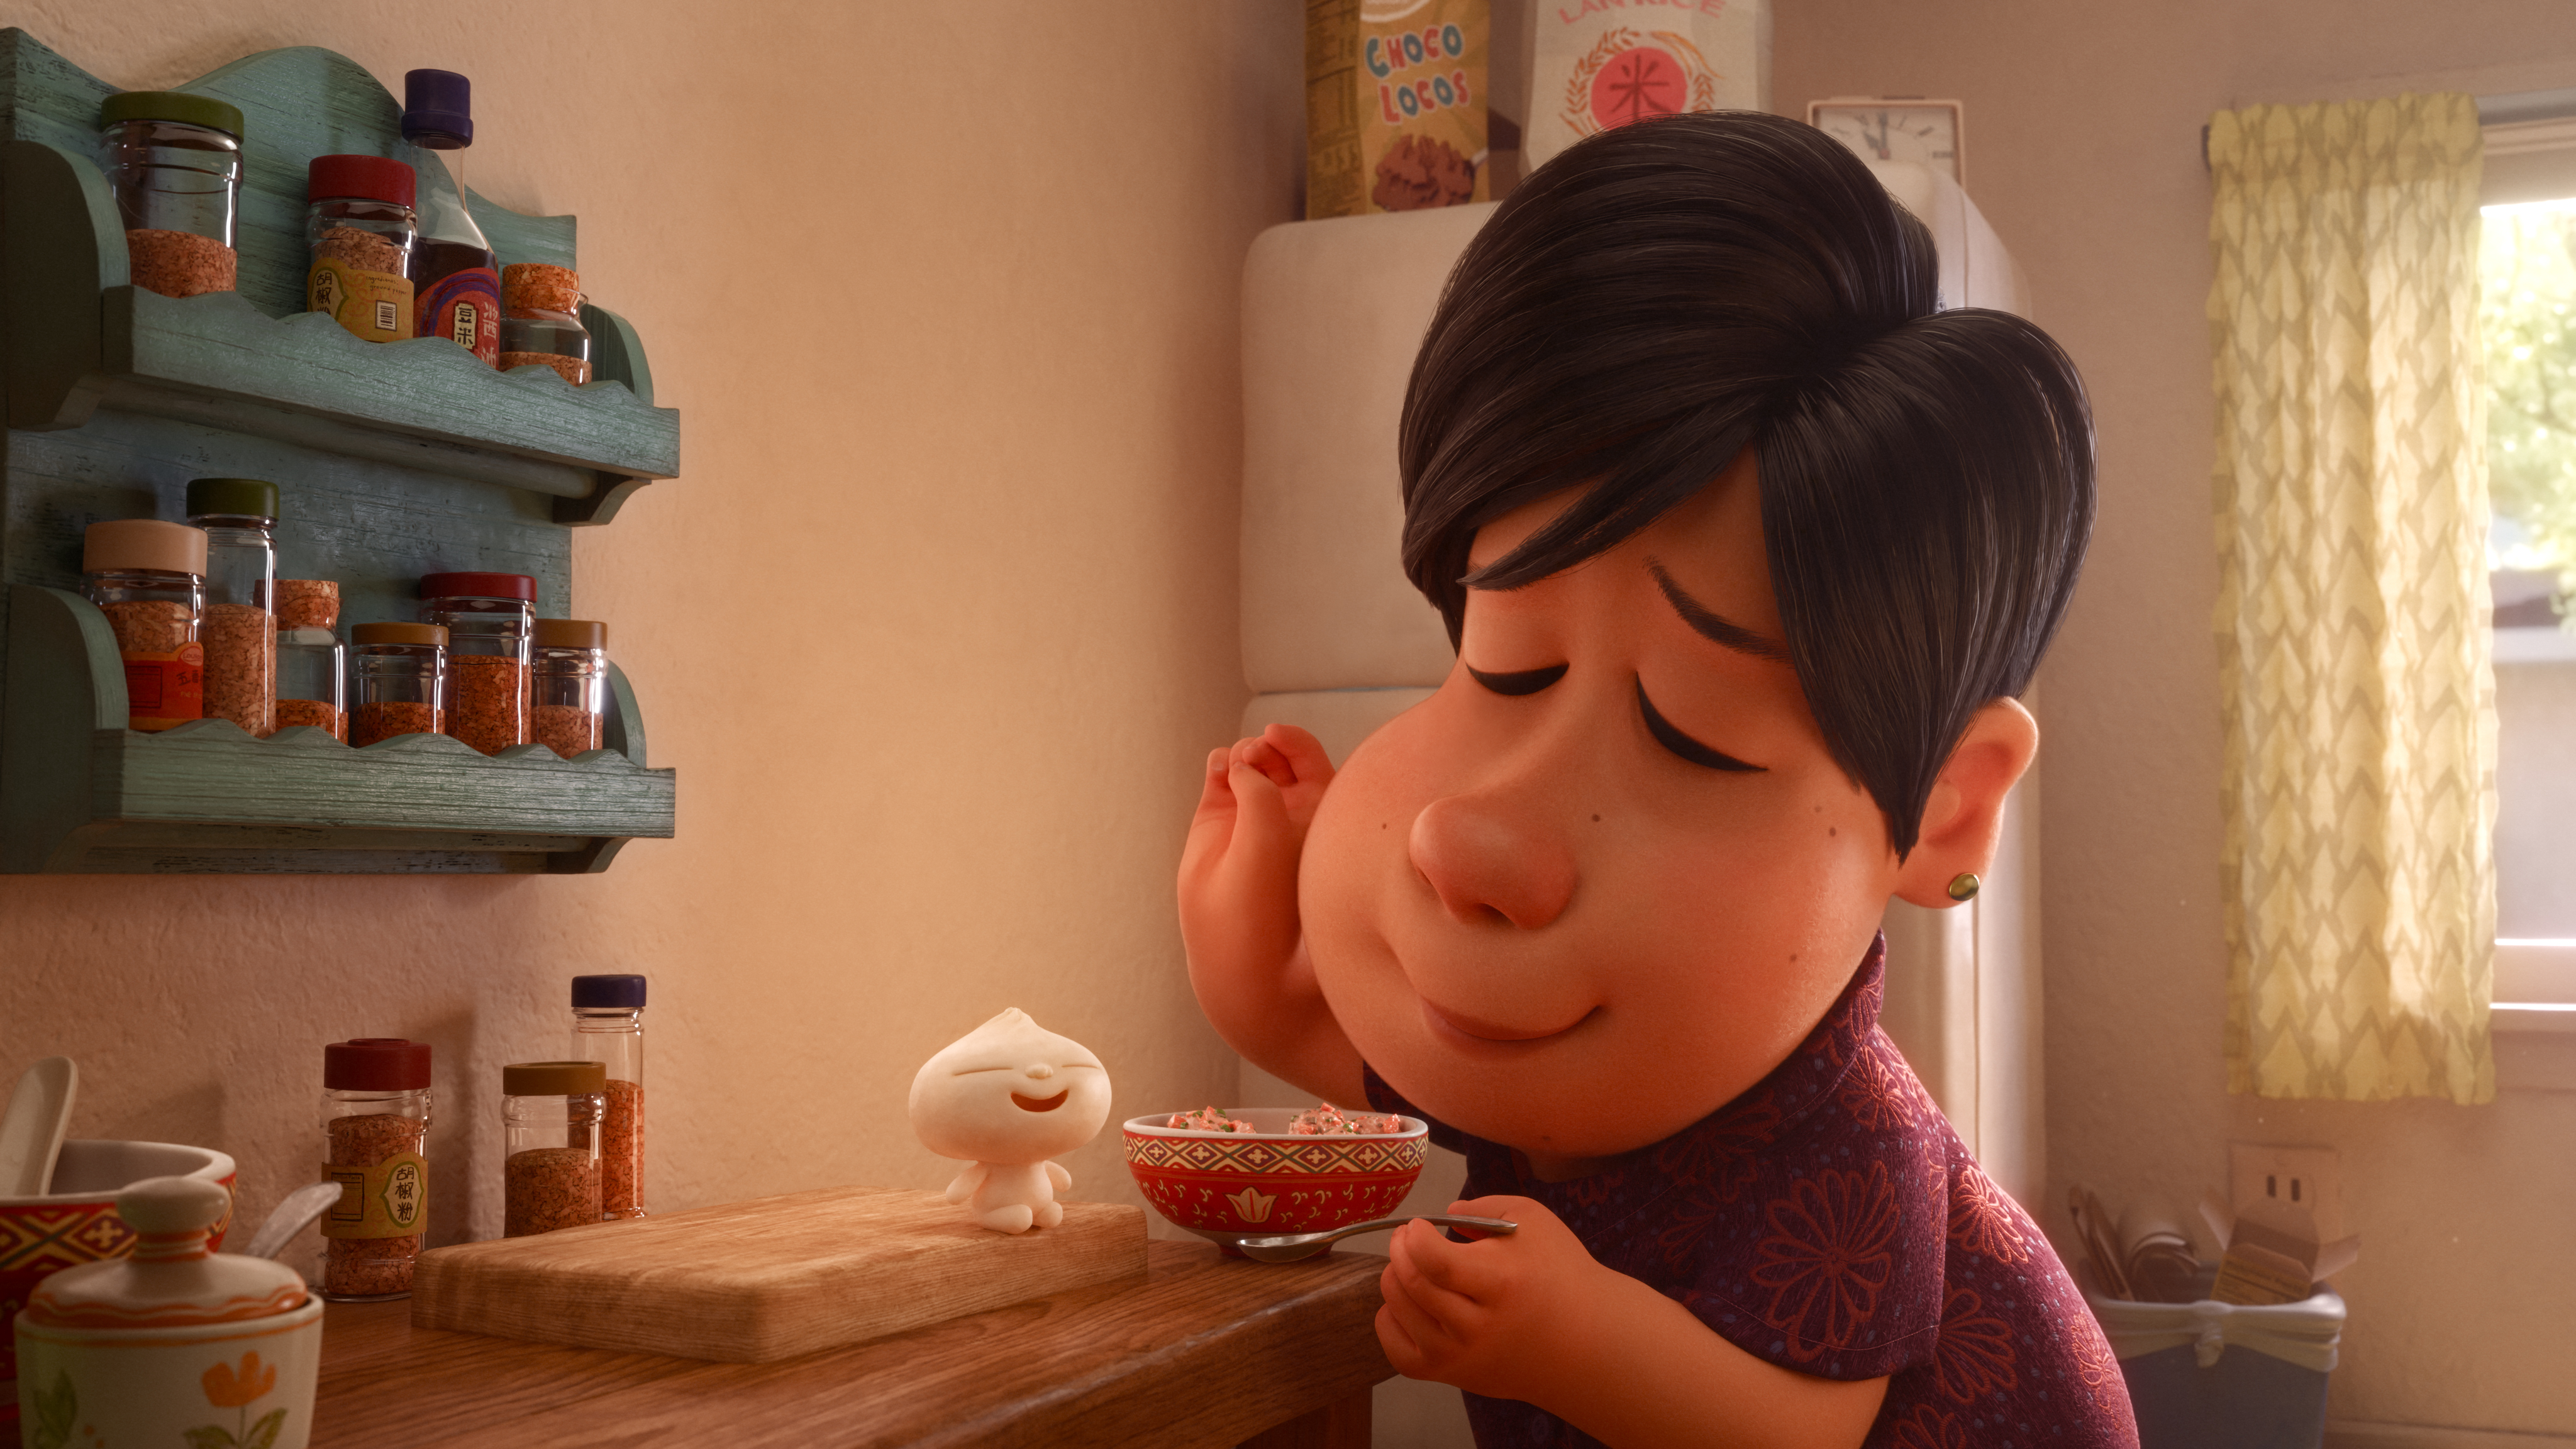 "LITTLE BITE -- In Disney•Pixar's new short ""Bao,"" an aging Chinese mom suffering from empty-nest syndrome gets another chance at motherhood when one of her dumplings springs to life as a lively dumpling boy. Her mothering instincts kick in immediately as she lovingly feeds her giggly new bundle of joy. Directed by Domee Shi, Bao"" opens in theaters on June 15, 2018, in front of ""Incredibles 2."" ©2018 Disney•Pixar. All Rights Reserved."